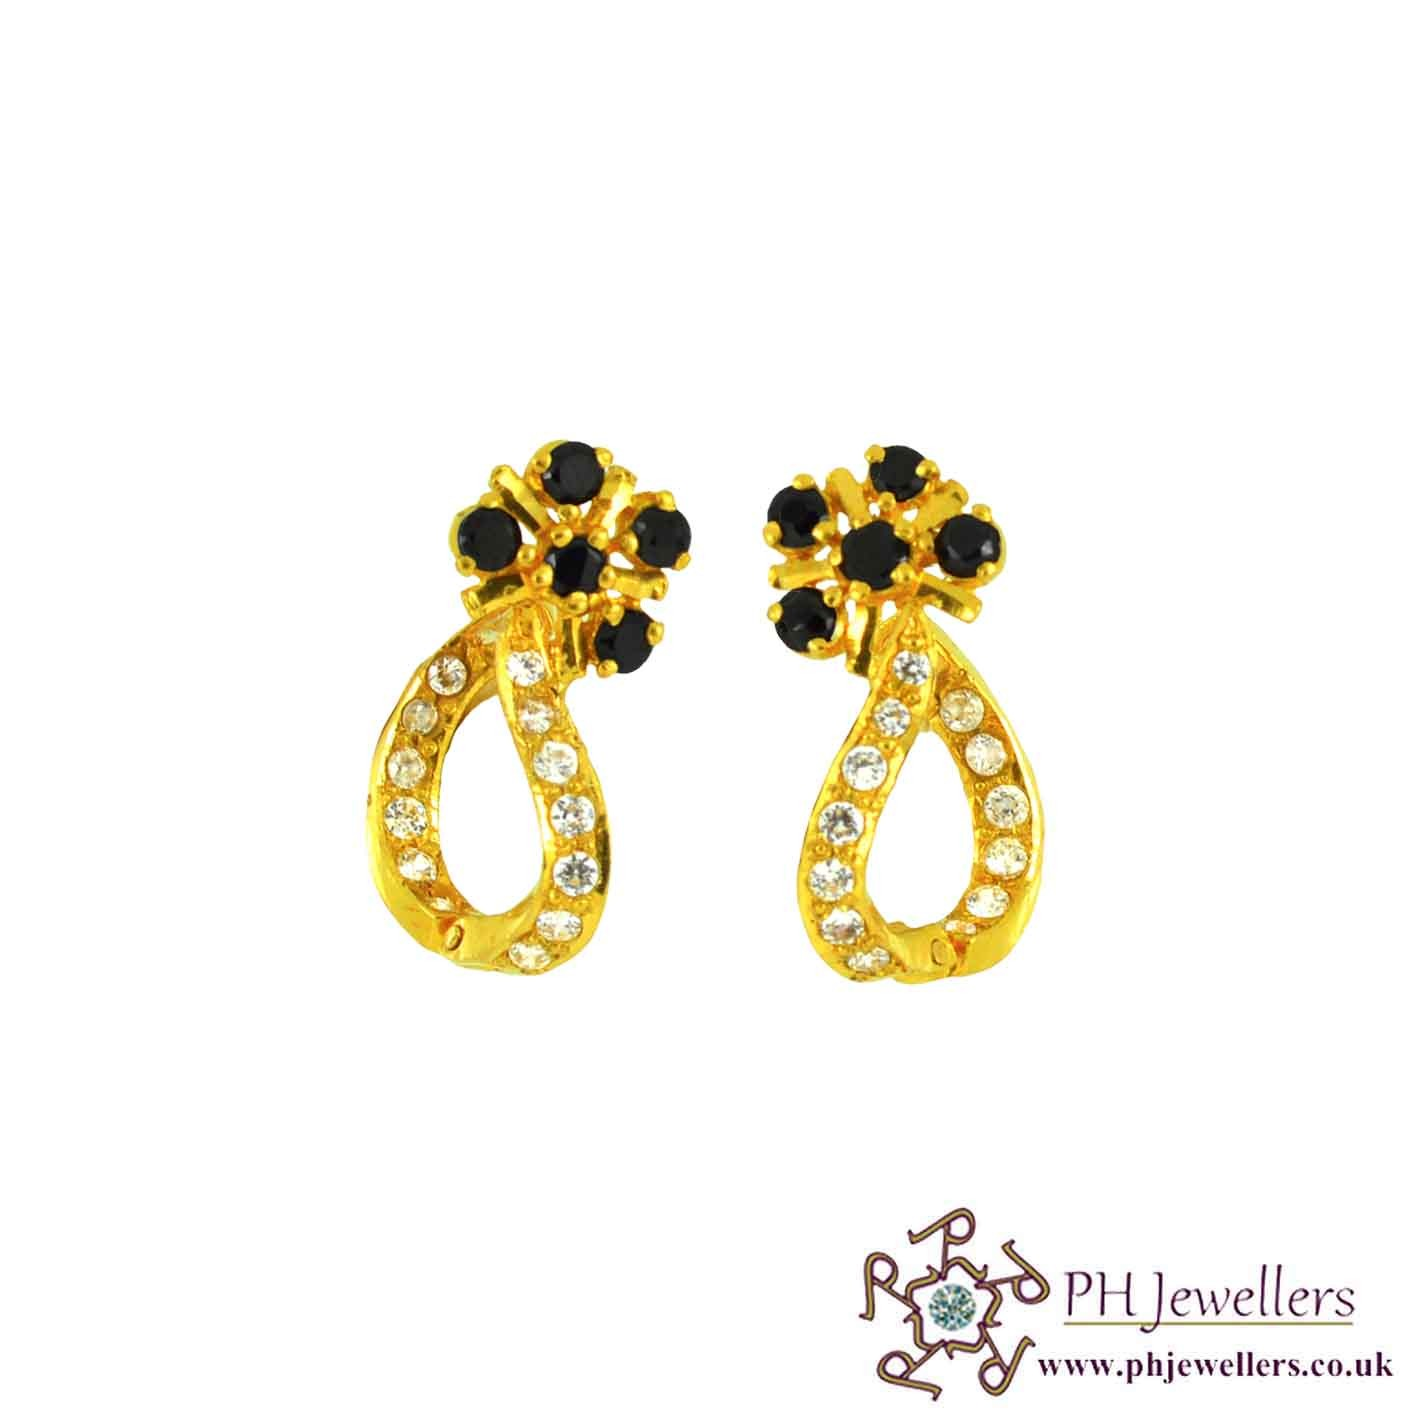 22ct 916 Hallmark Yellow Gold Clip On Black & White Earring CZ CE11